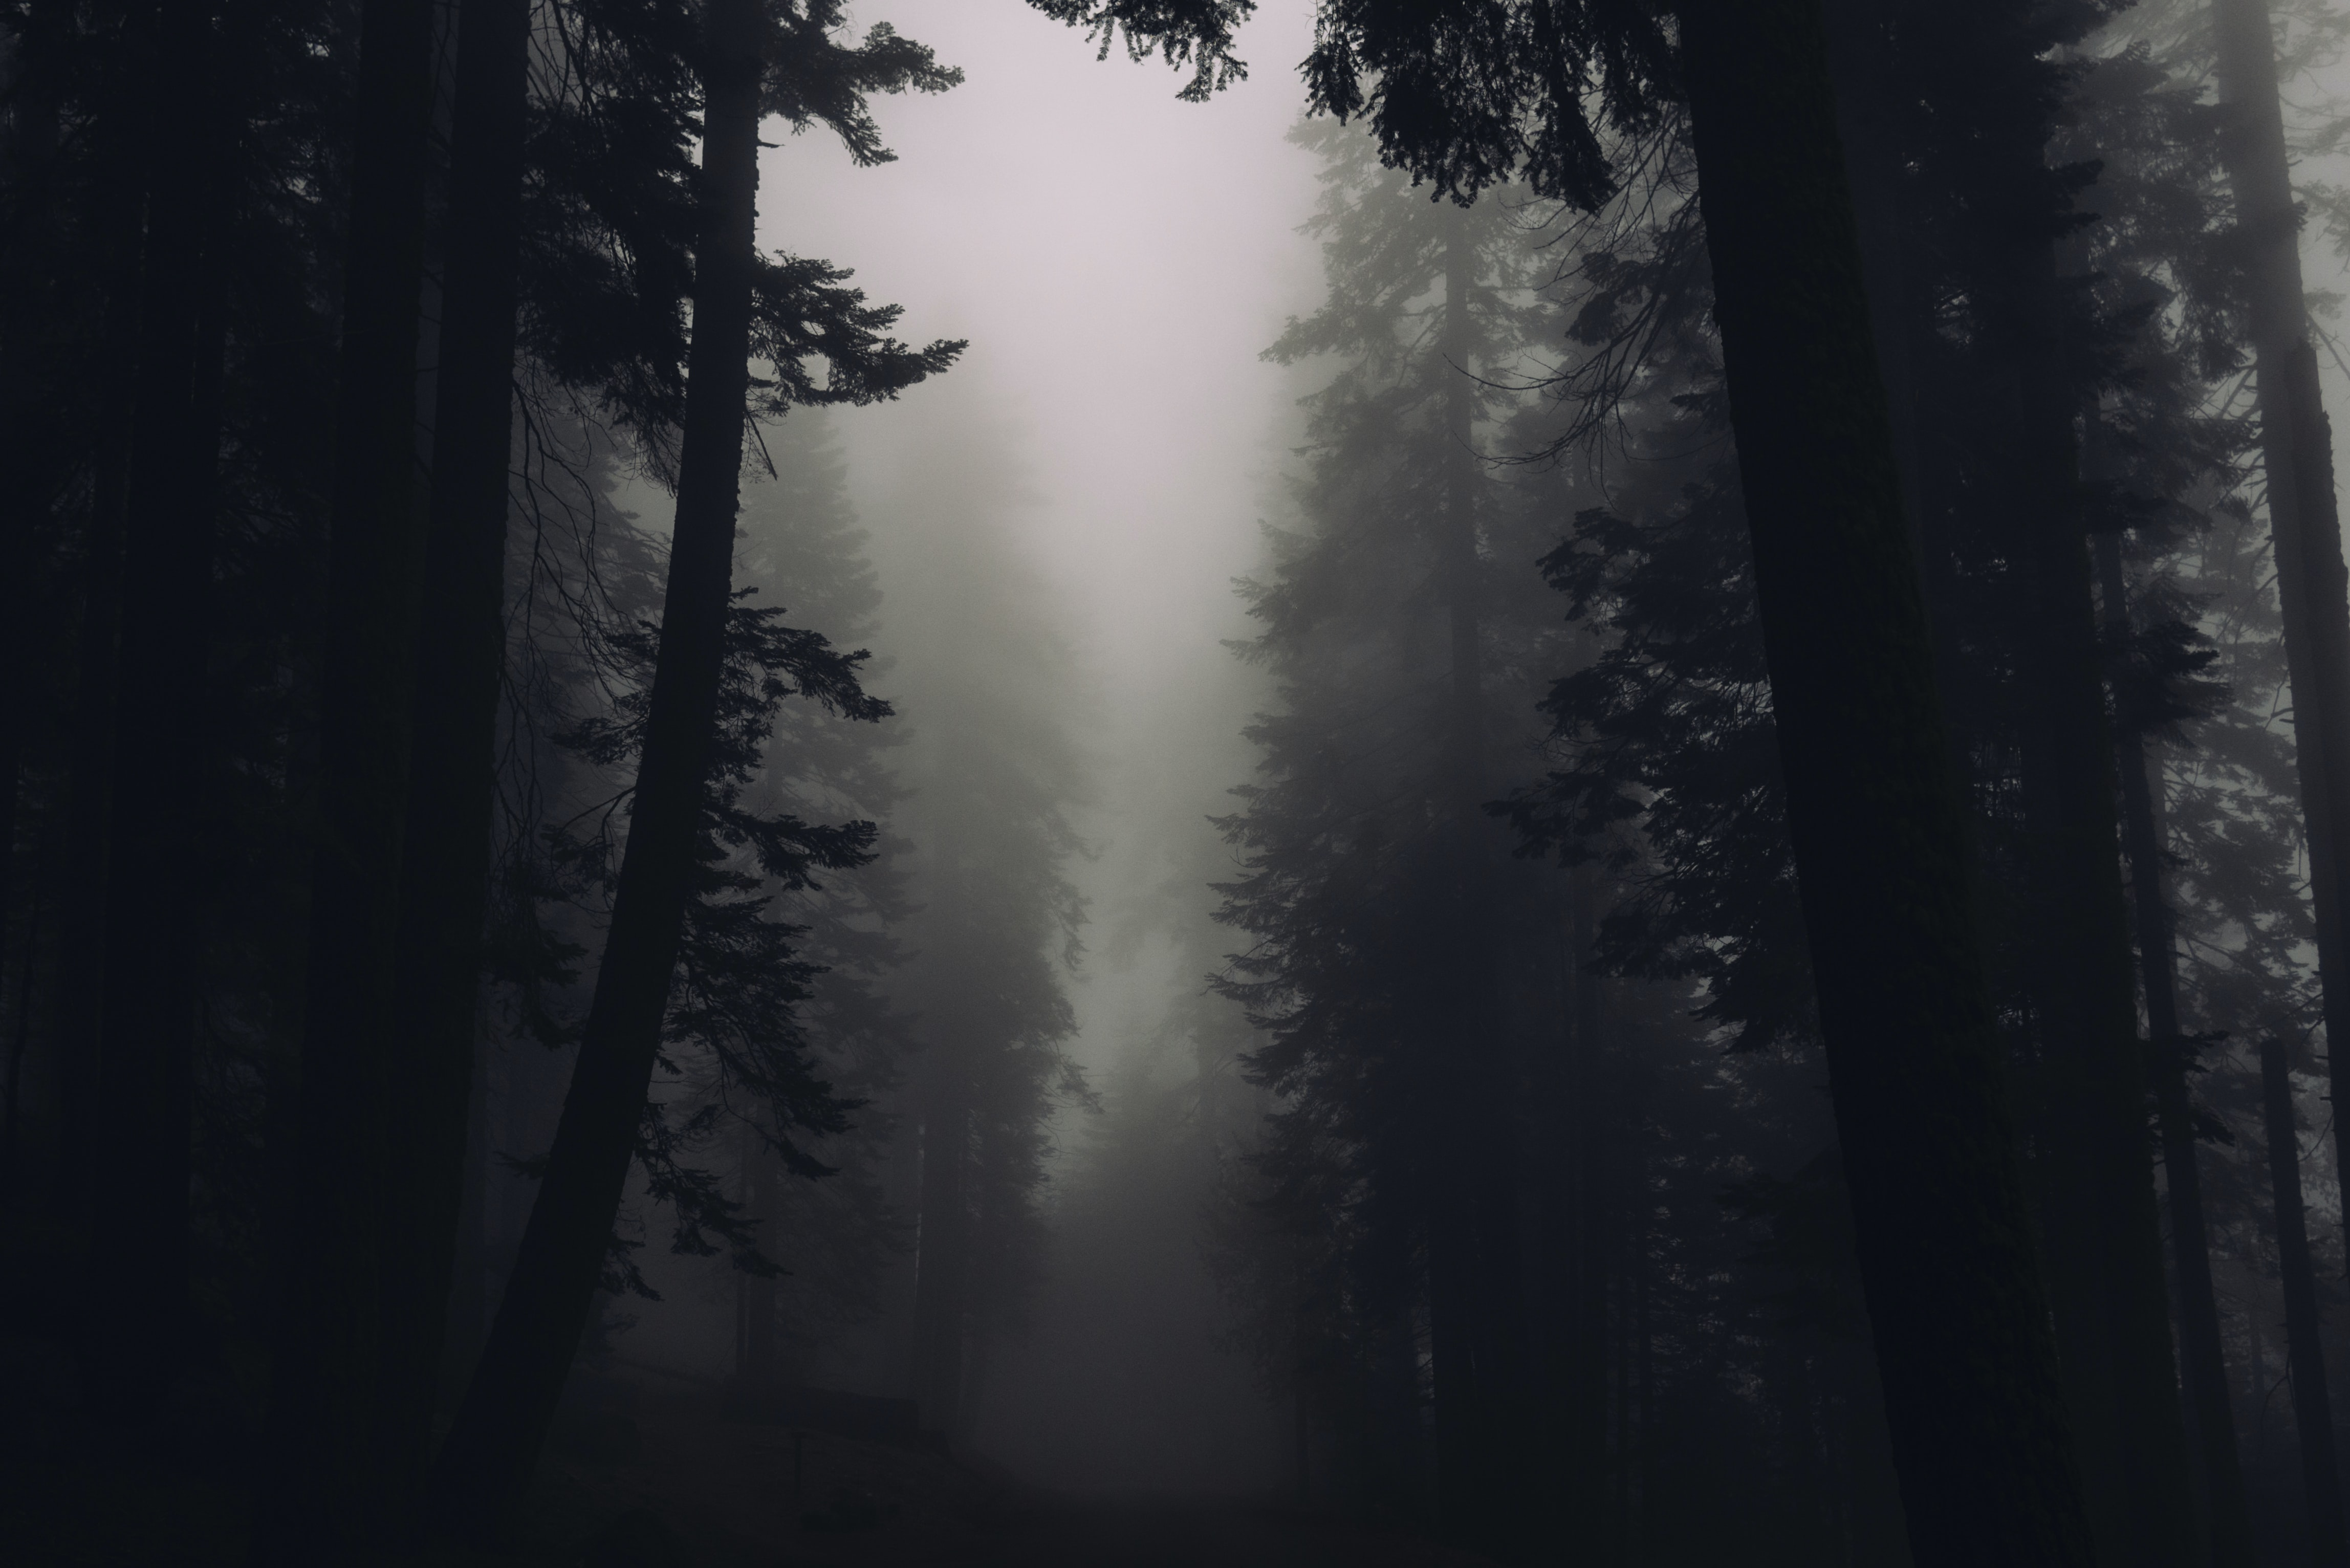 silhouette photograph of trees with foggy weather